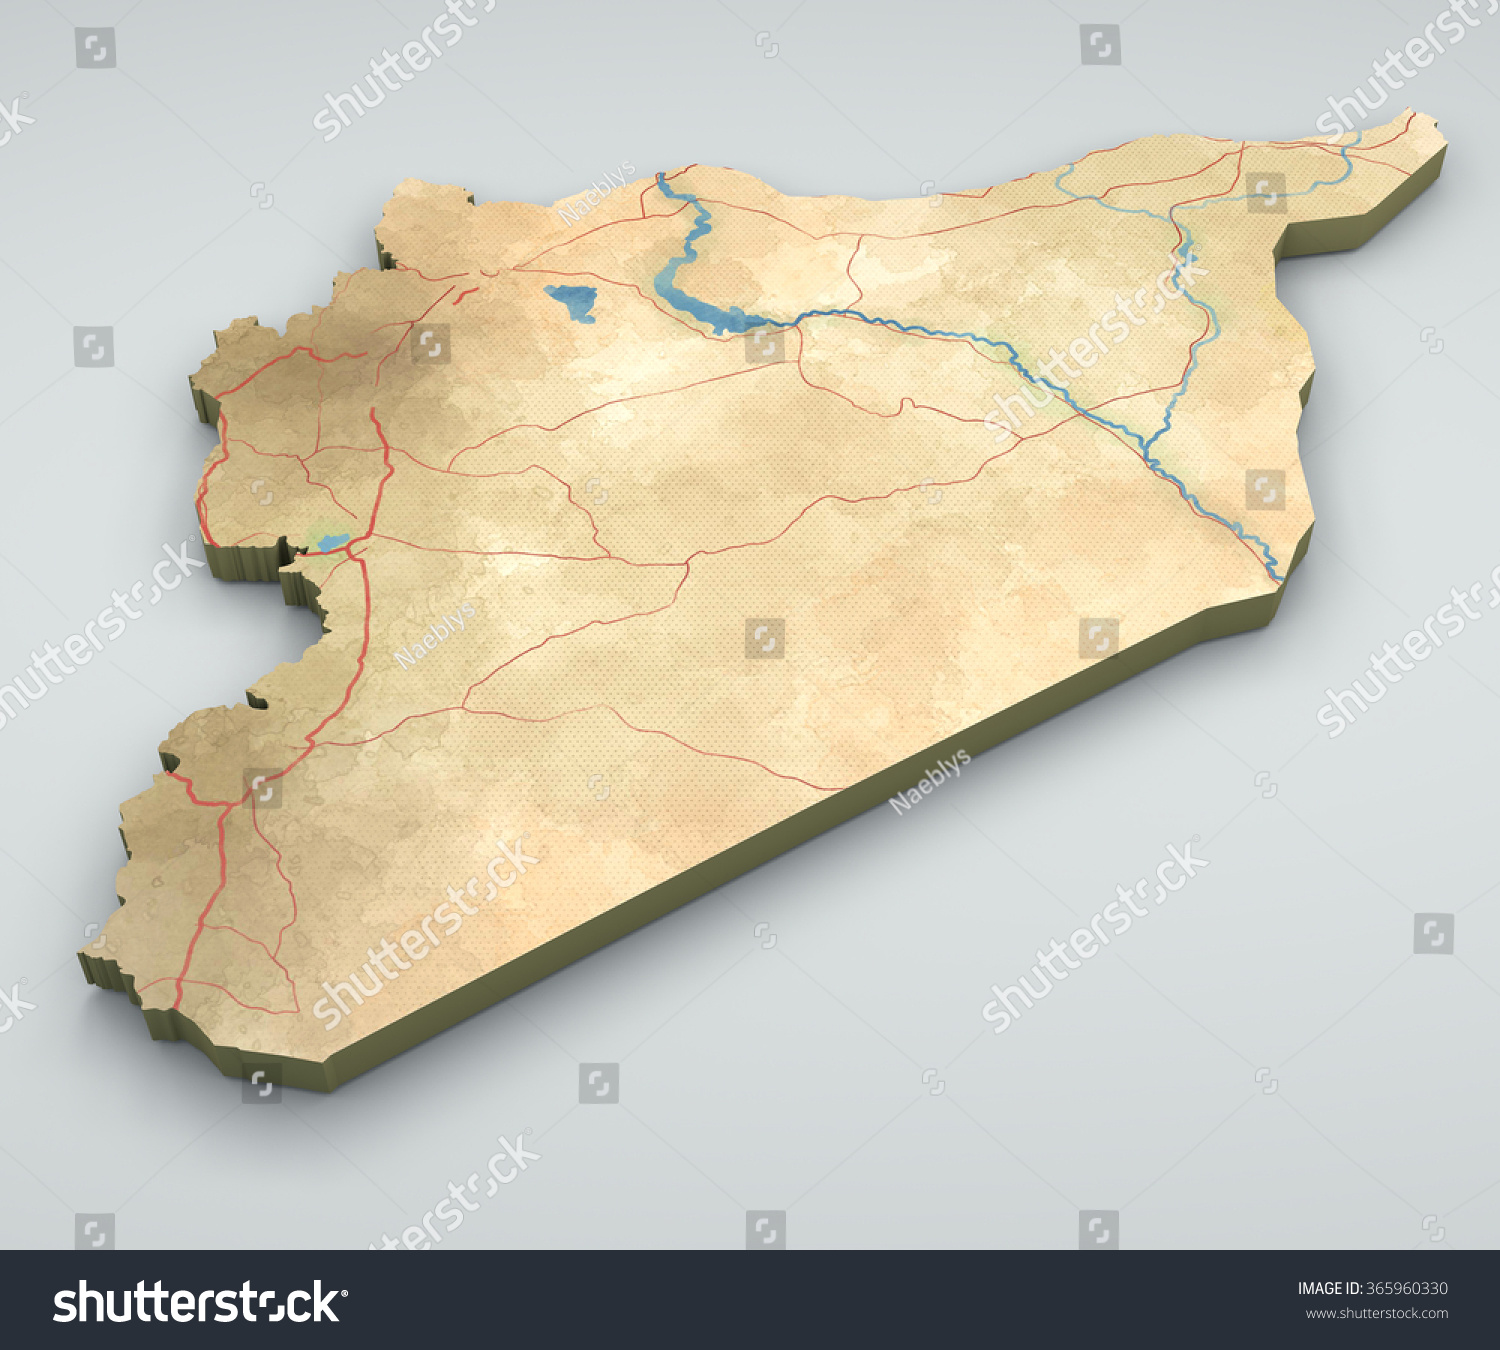 Syria map physical map hand drawn 3d